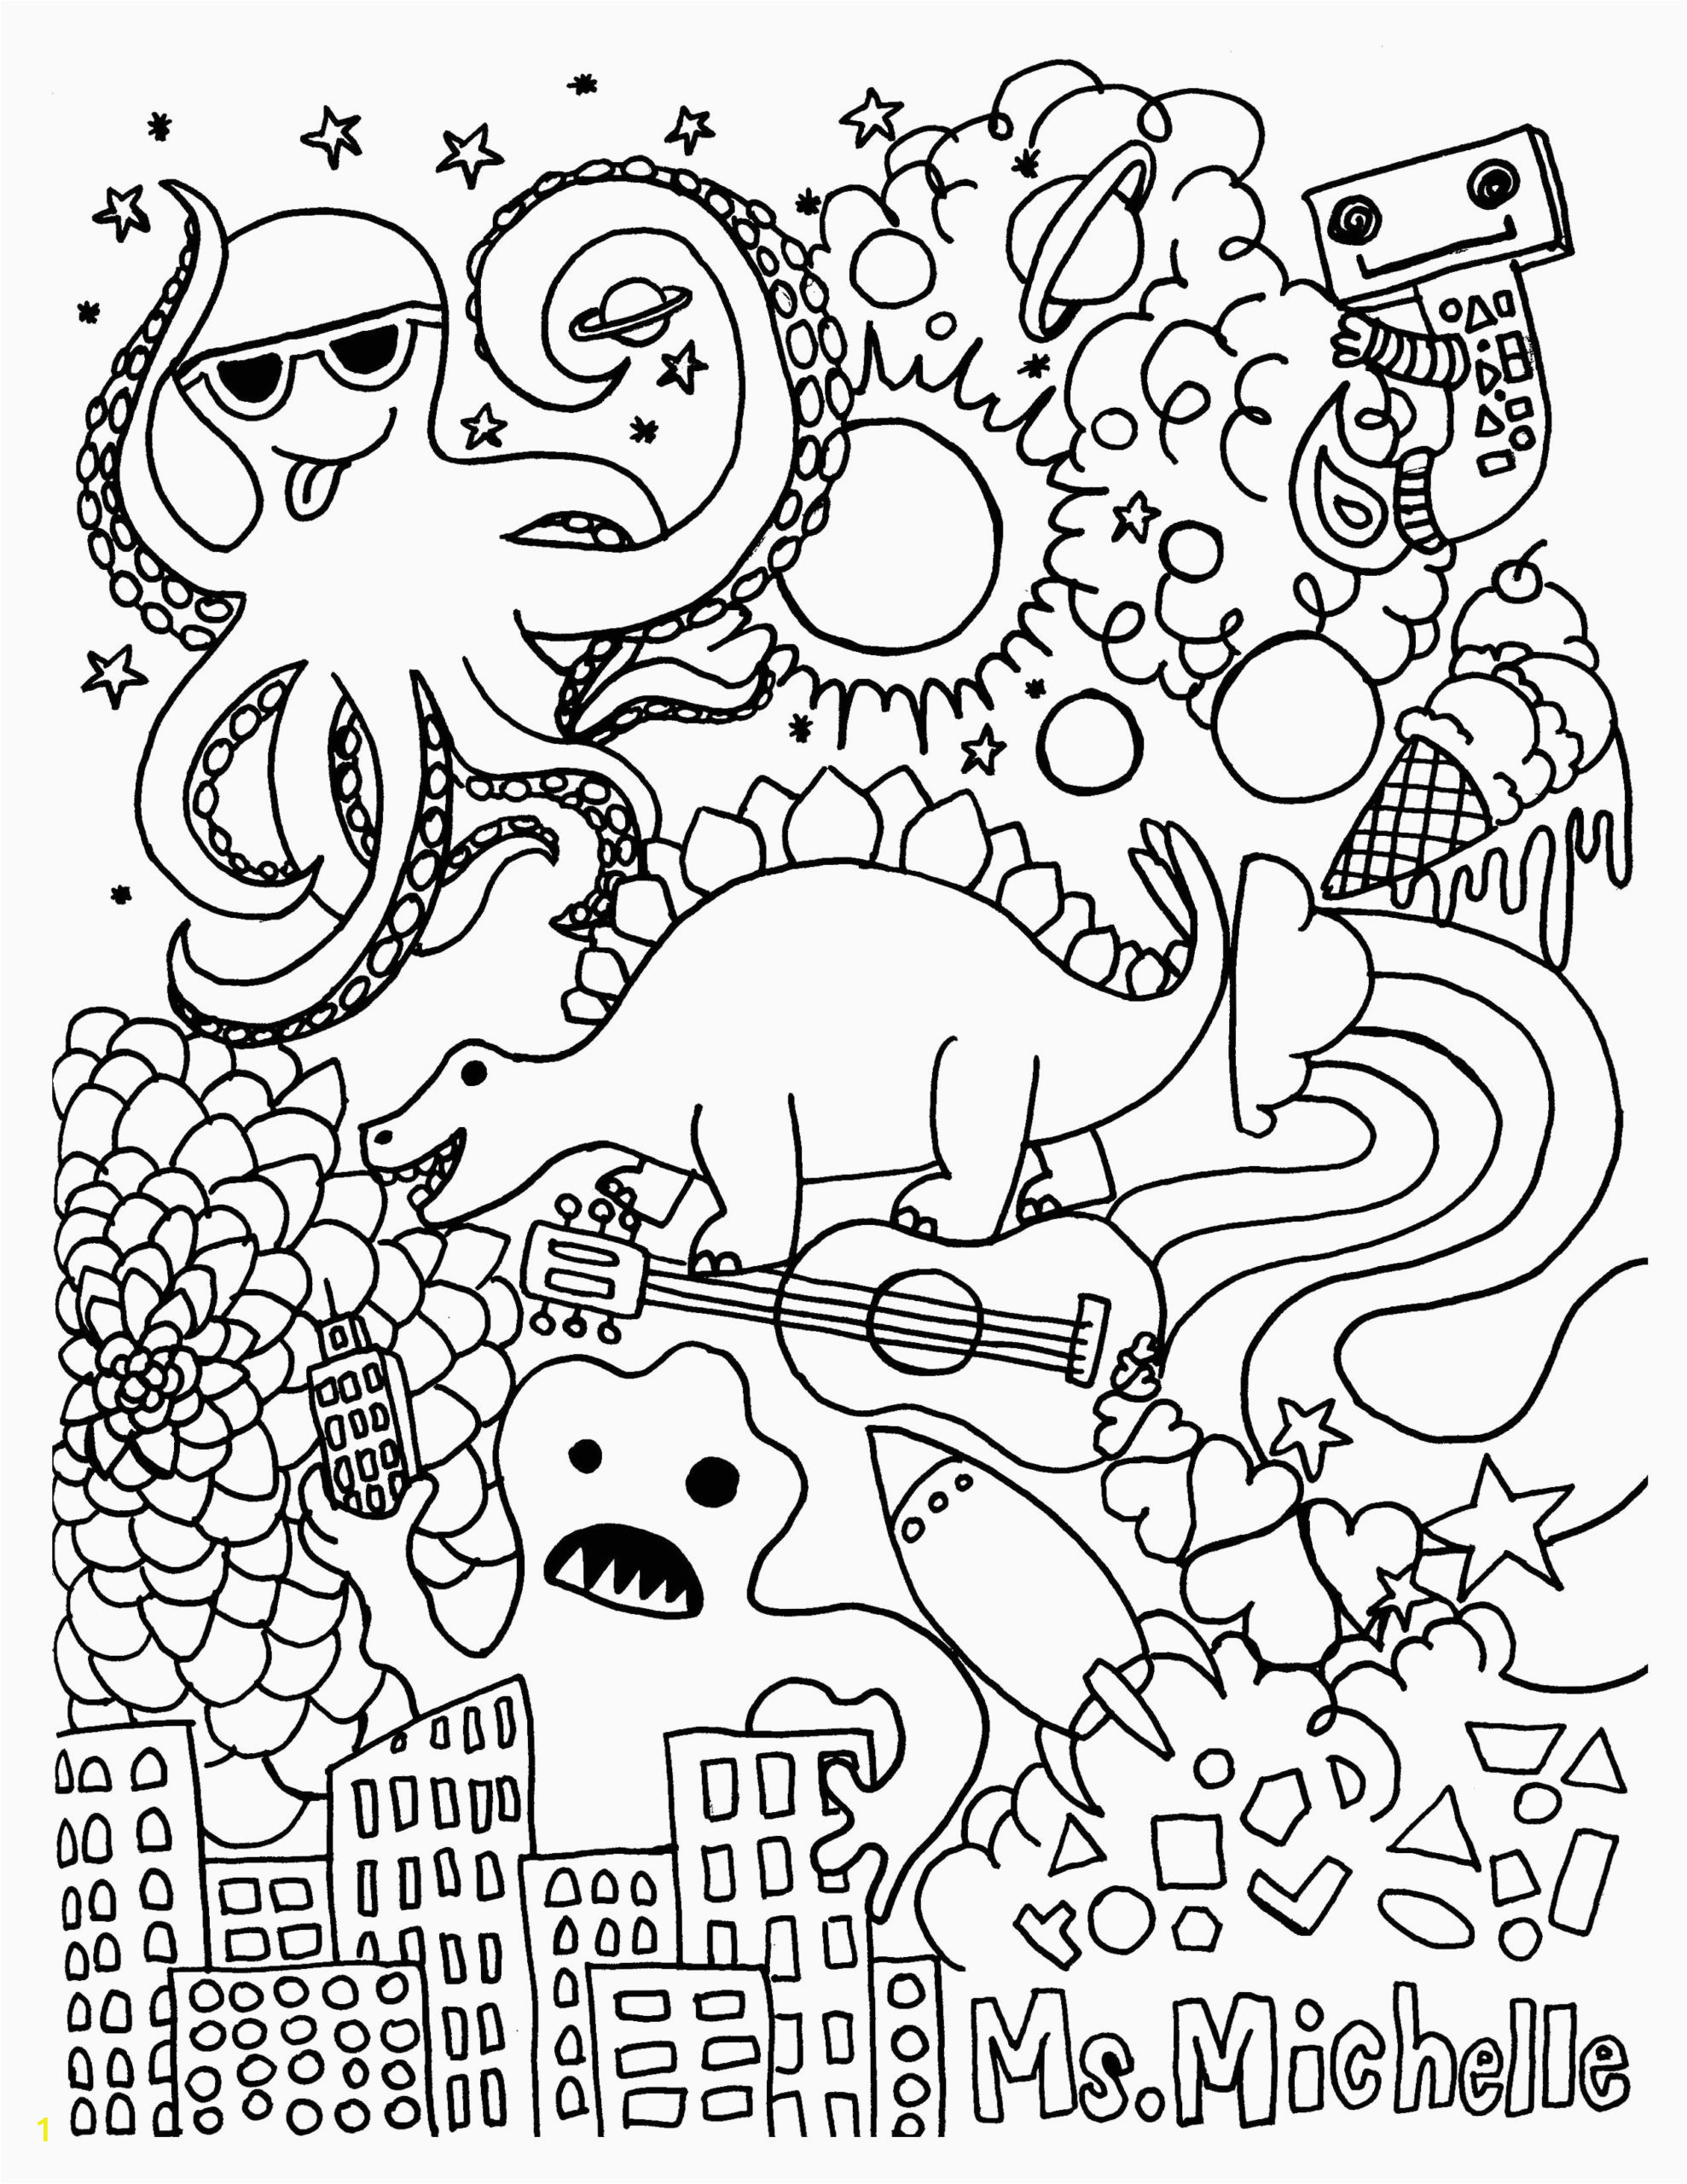 coloring picture create your own coloringge online lovelys astonishing image ideas book scaled